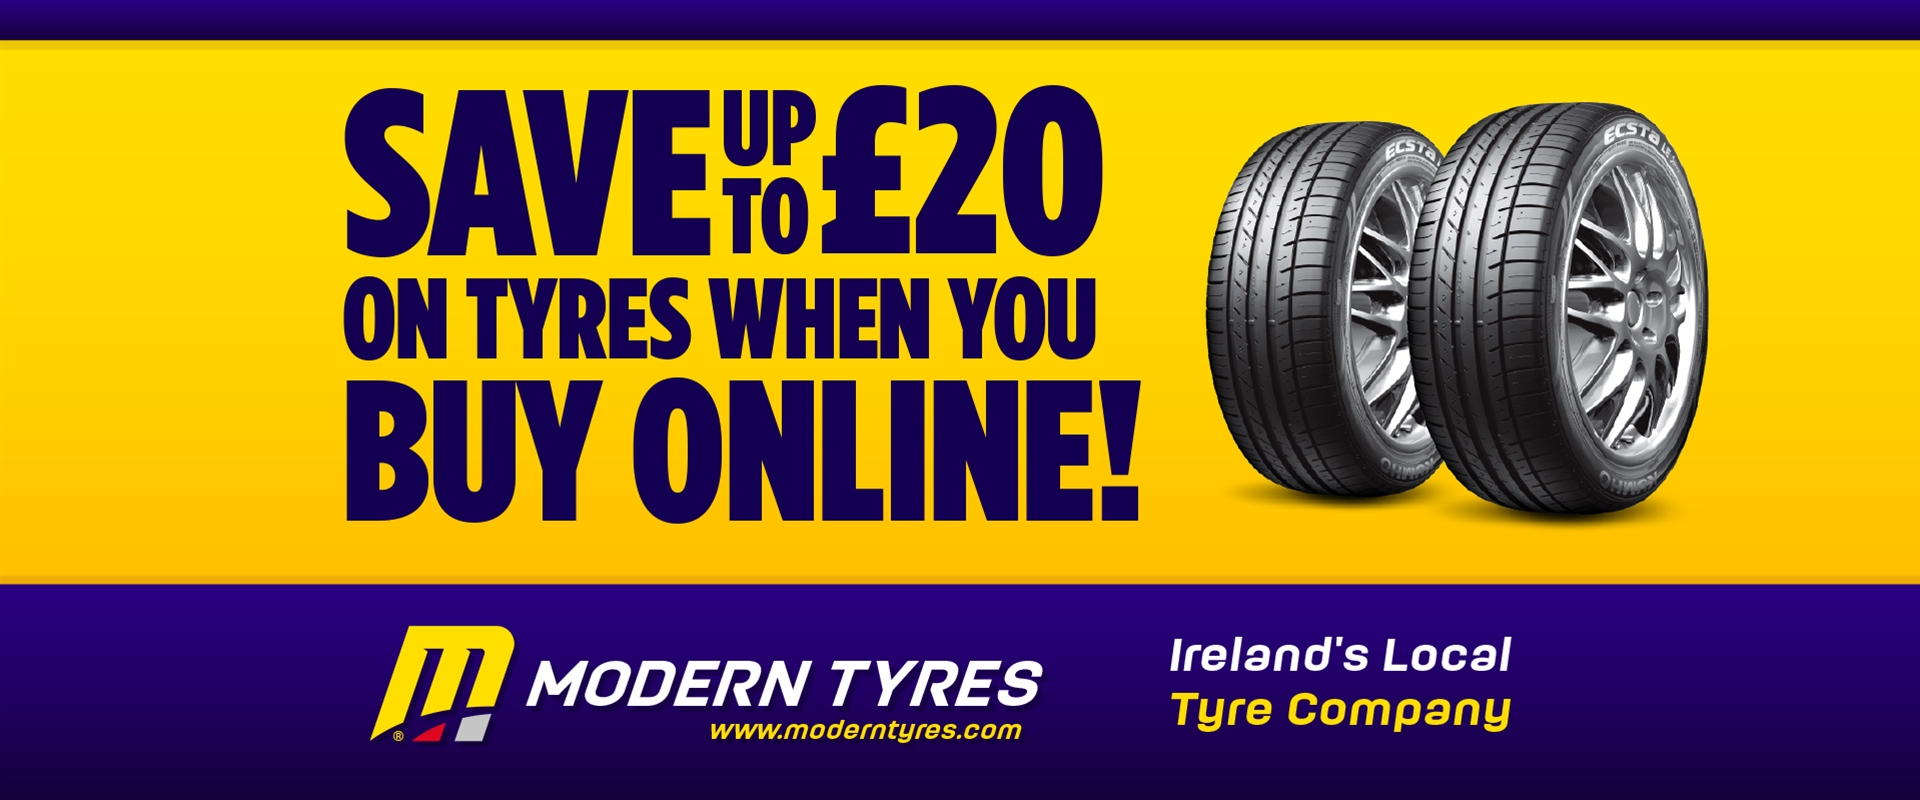 new product 80b3d 16777 Modern Tyres, family-run for over 52 years   Over 40 depots Nationwide.  Ireland s Local Tyre Company